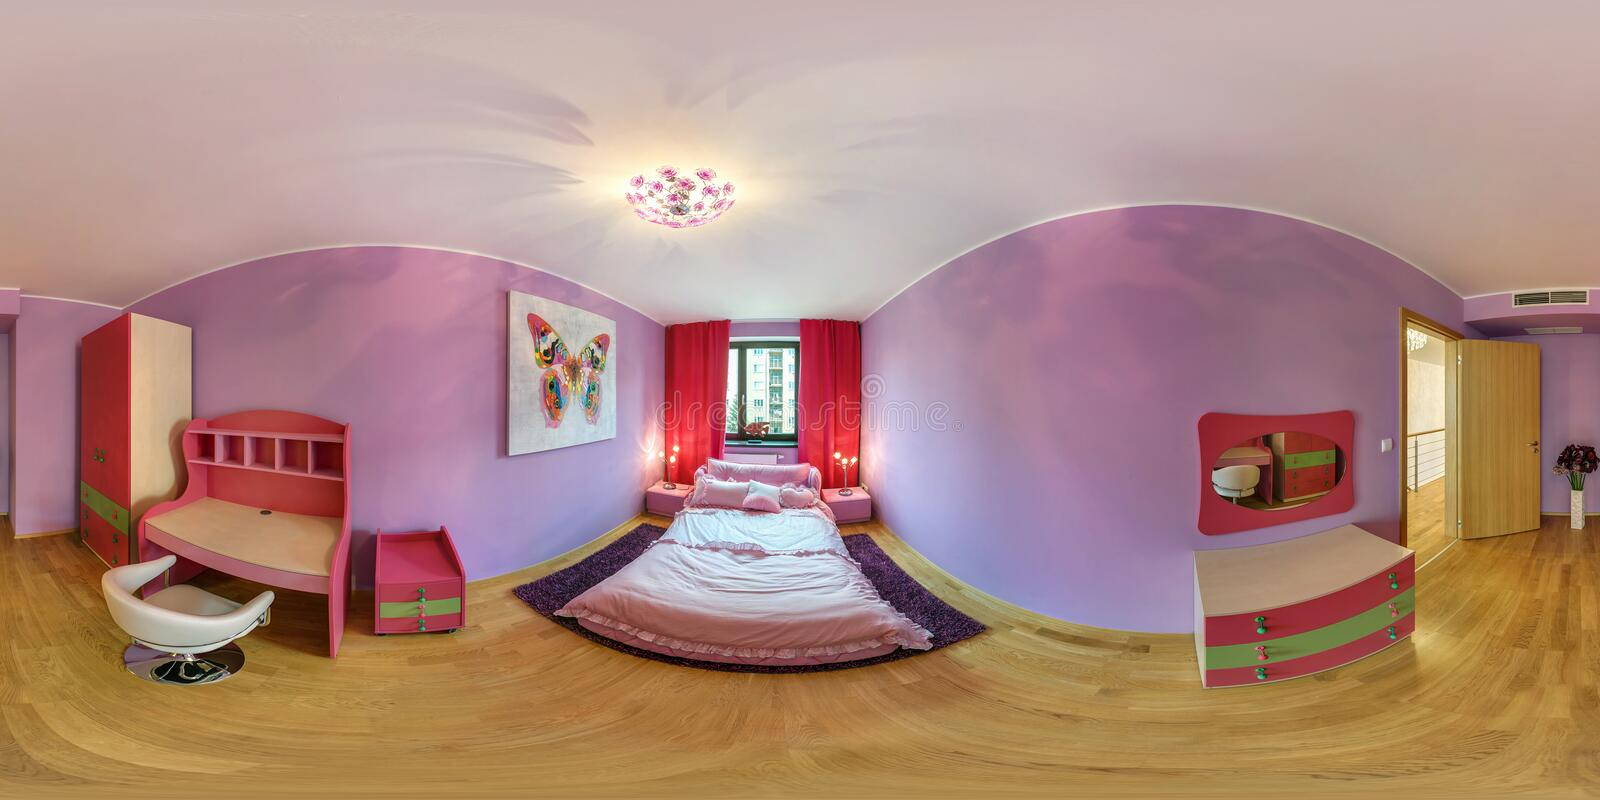 PRAHA, CZECH REPUBLIC - AUGUST 08, 2013: Modern loft apartment interior, children room in pink color, full 360 panorama in royalty free stock image